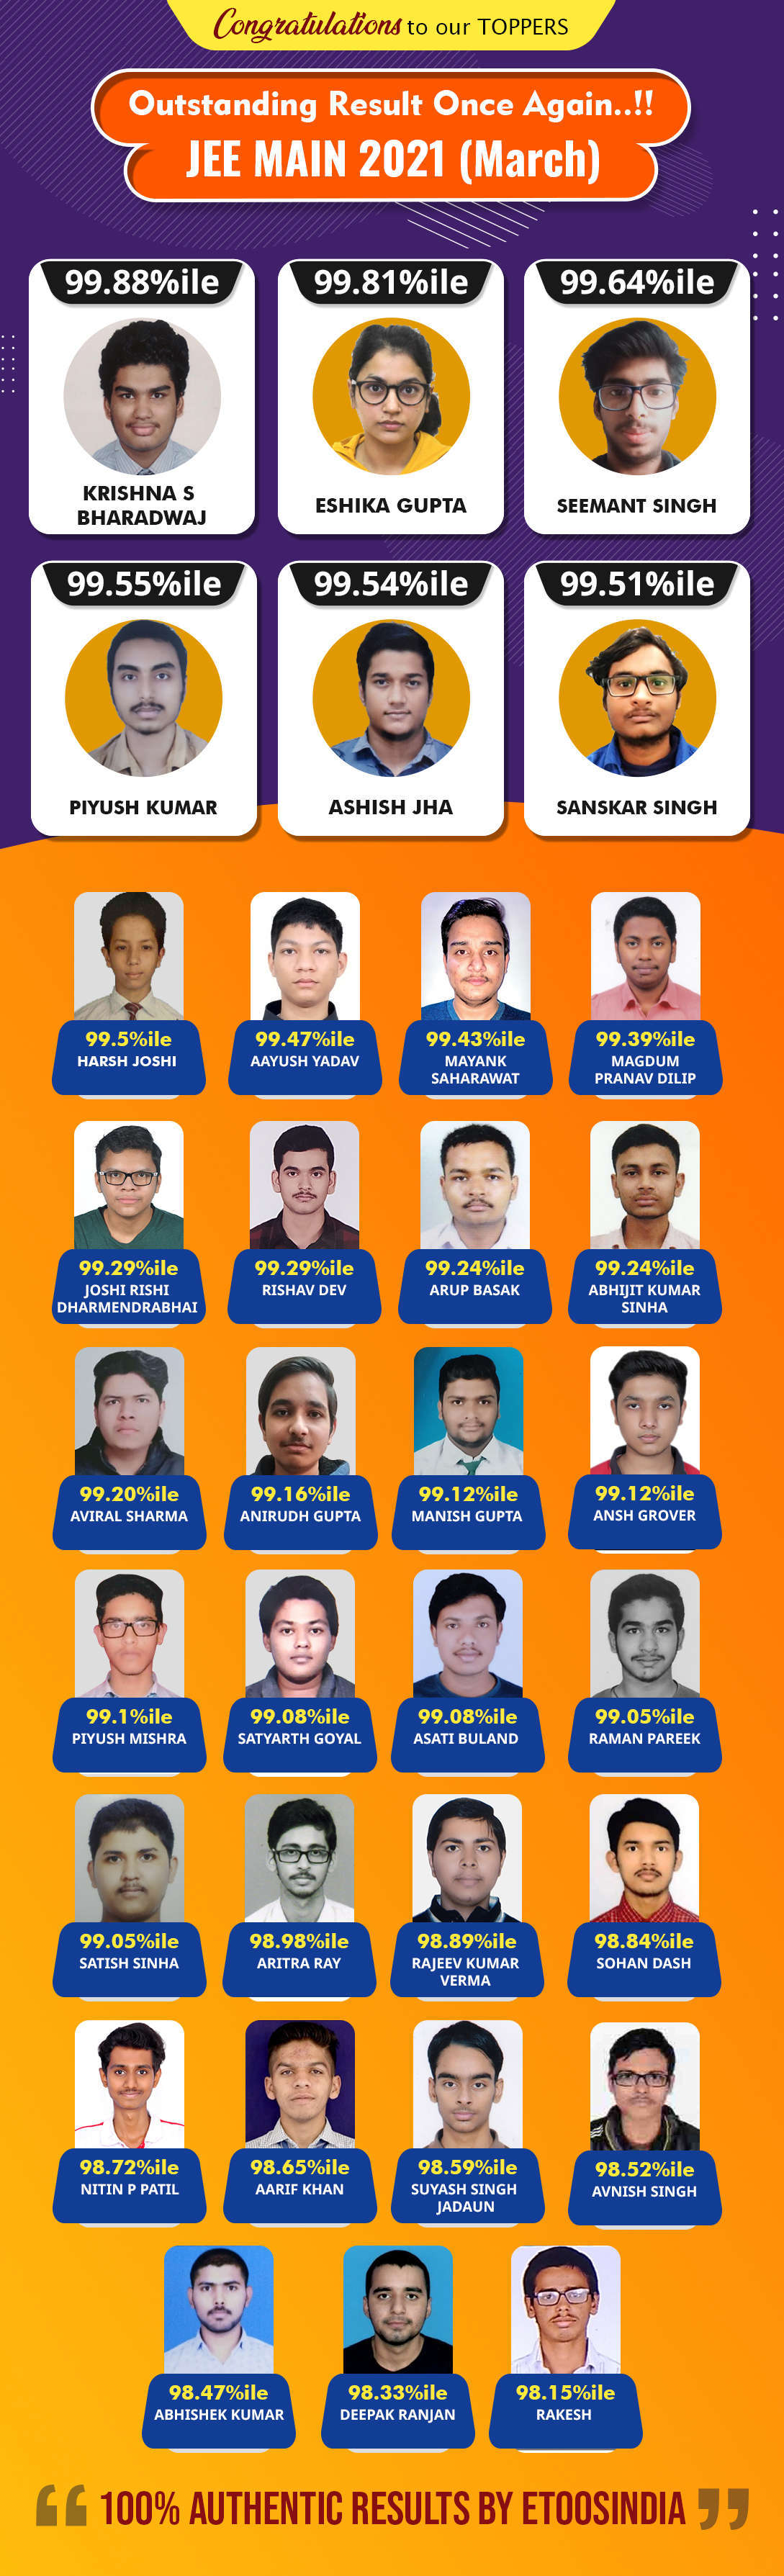 2021 JEE Main (March.) Result